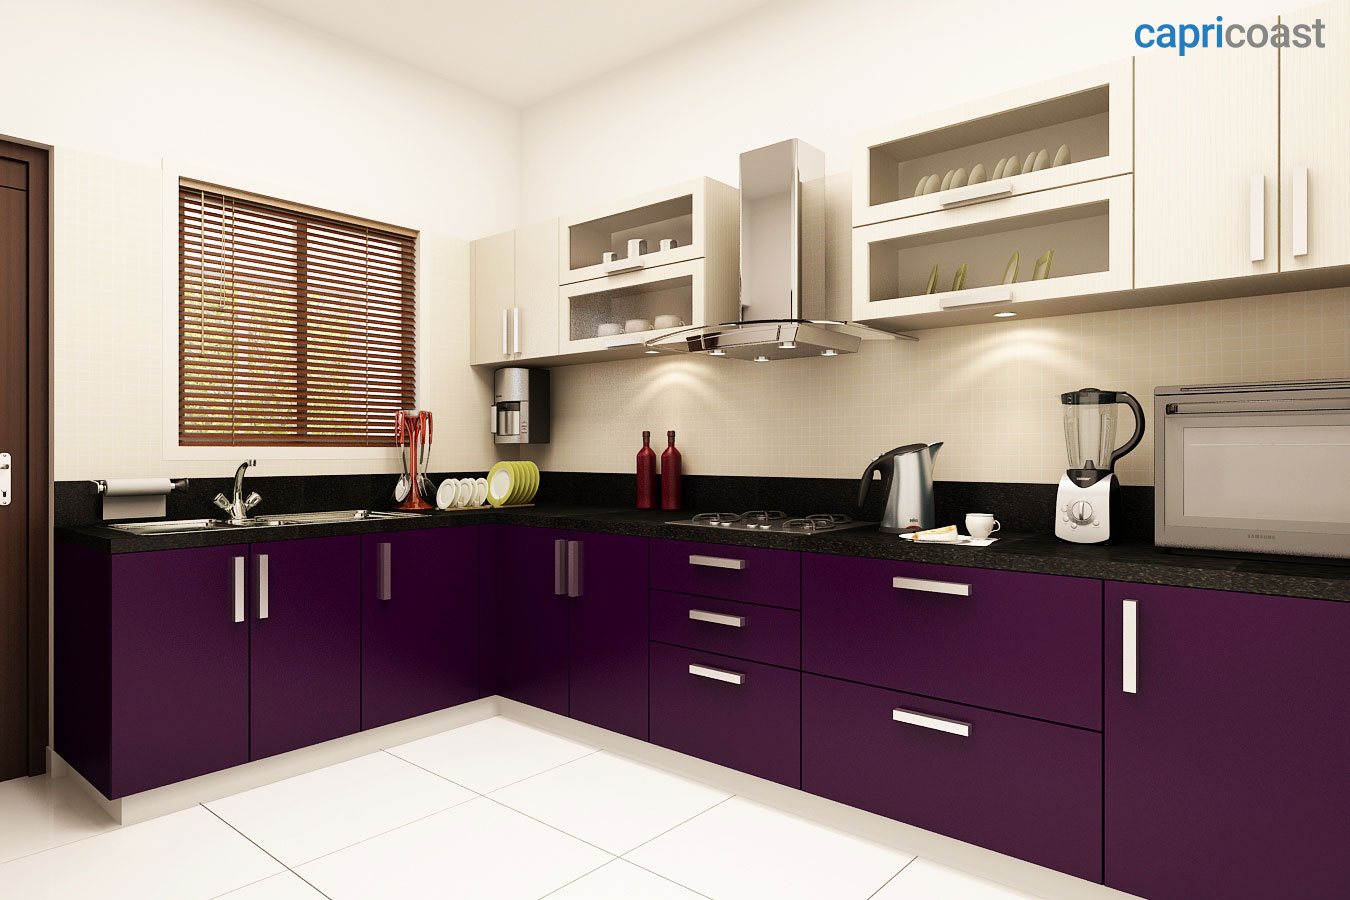 Modular Kitchen Interiors Design Decor Disha Capricoast The Smart Way To Do Your Kitchen